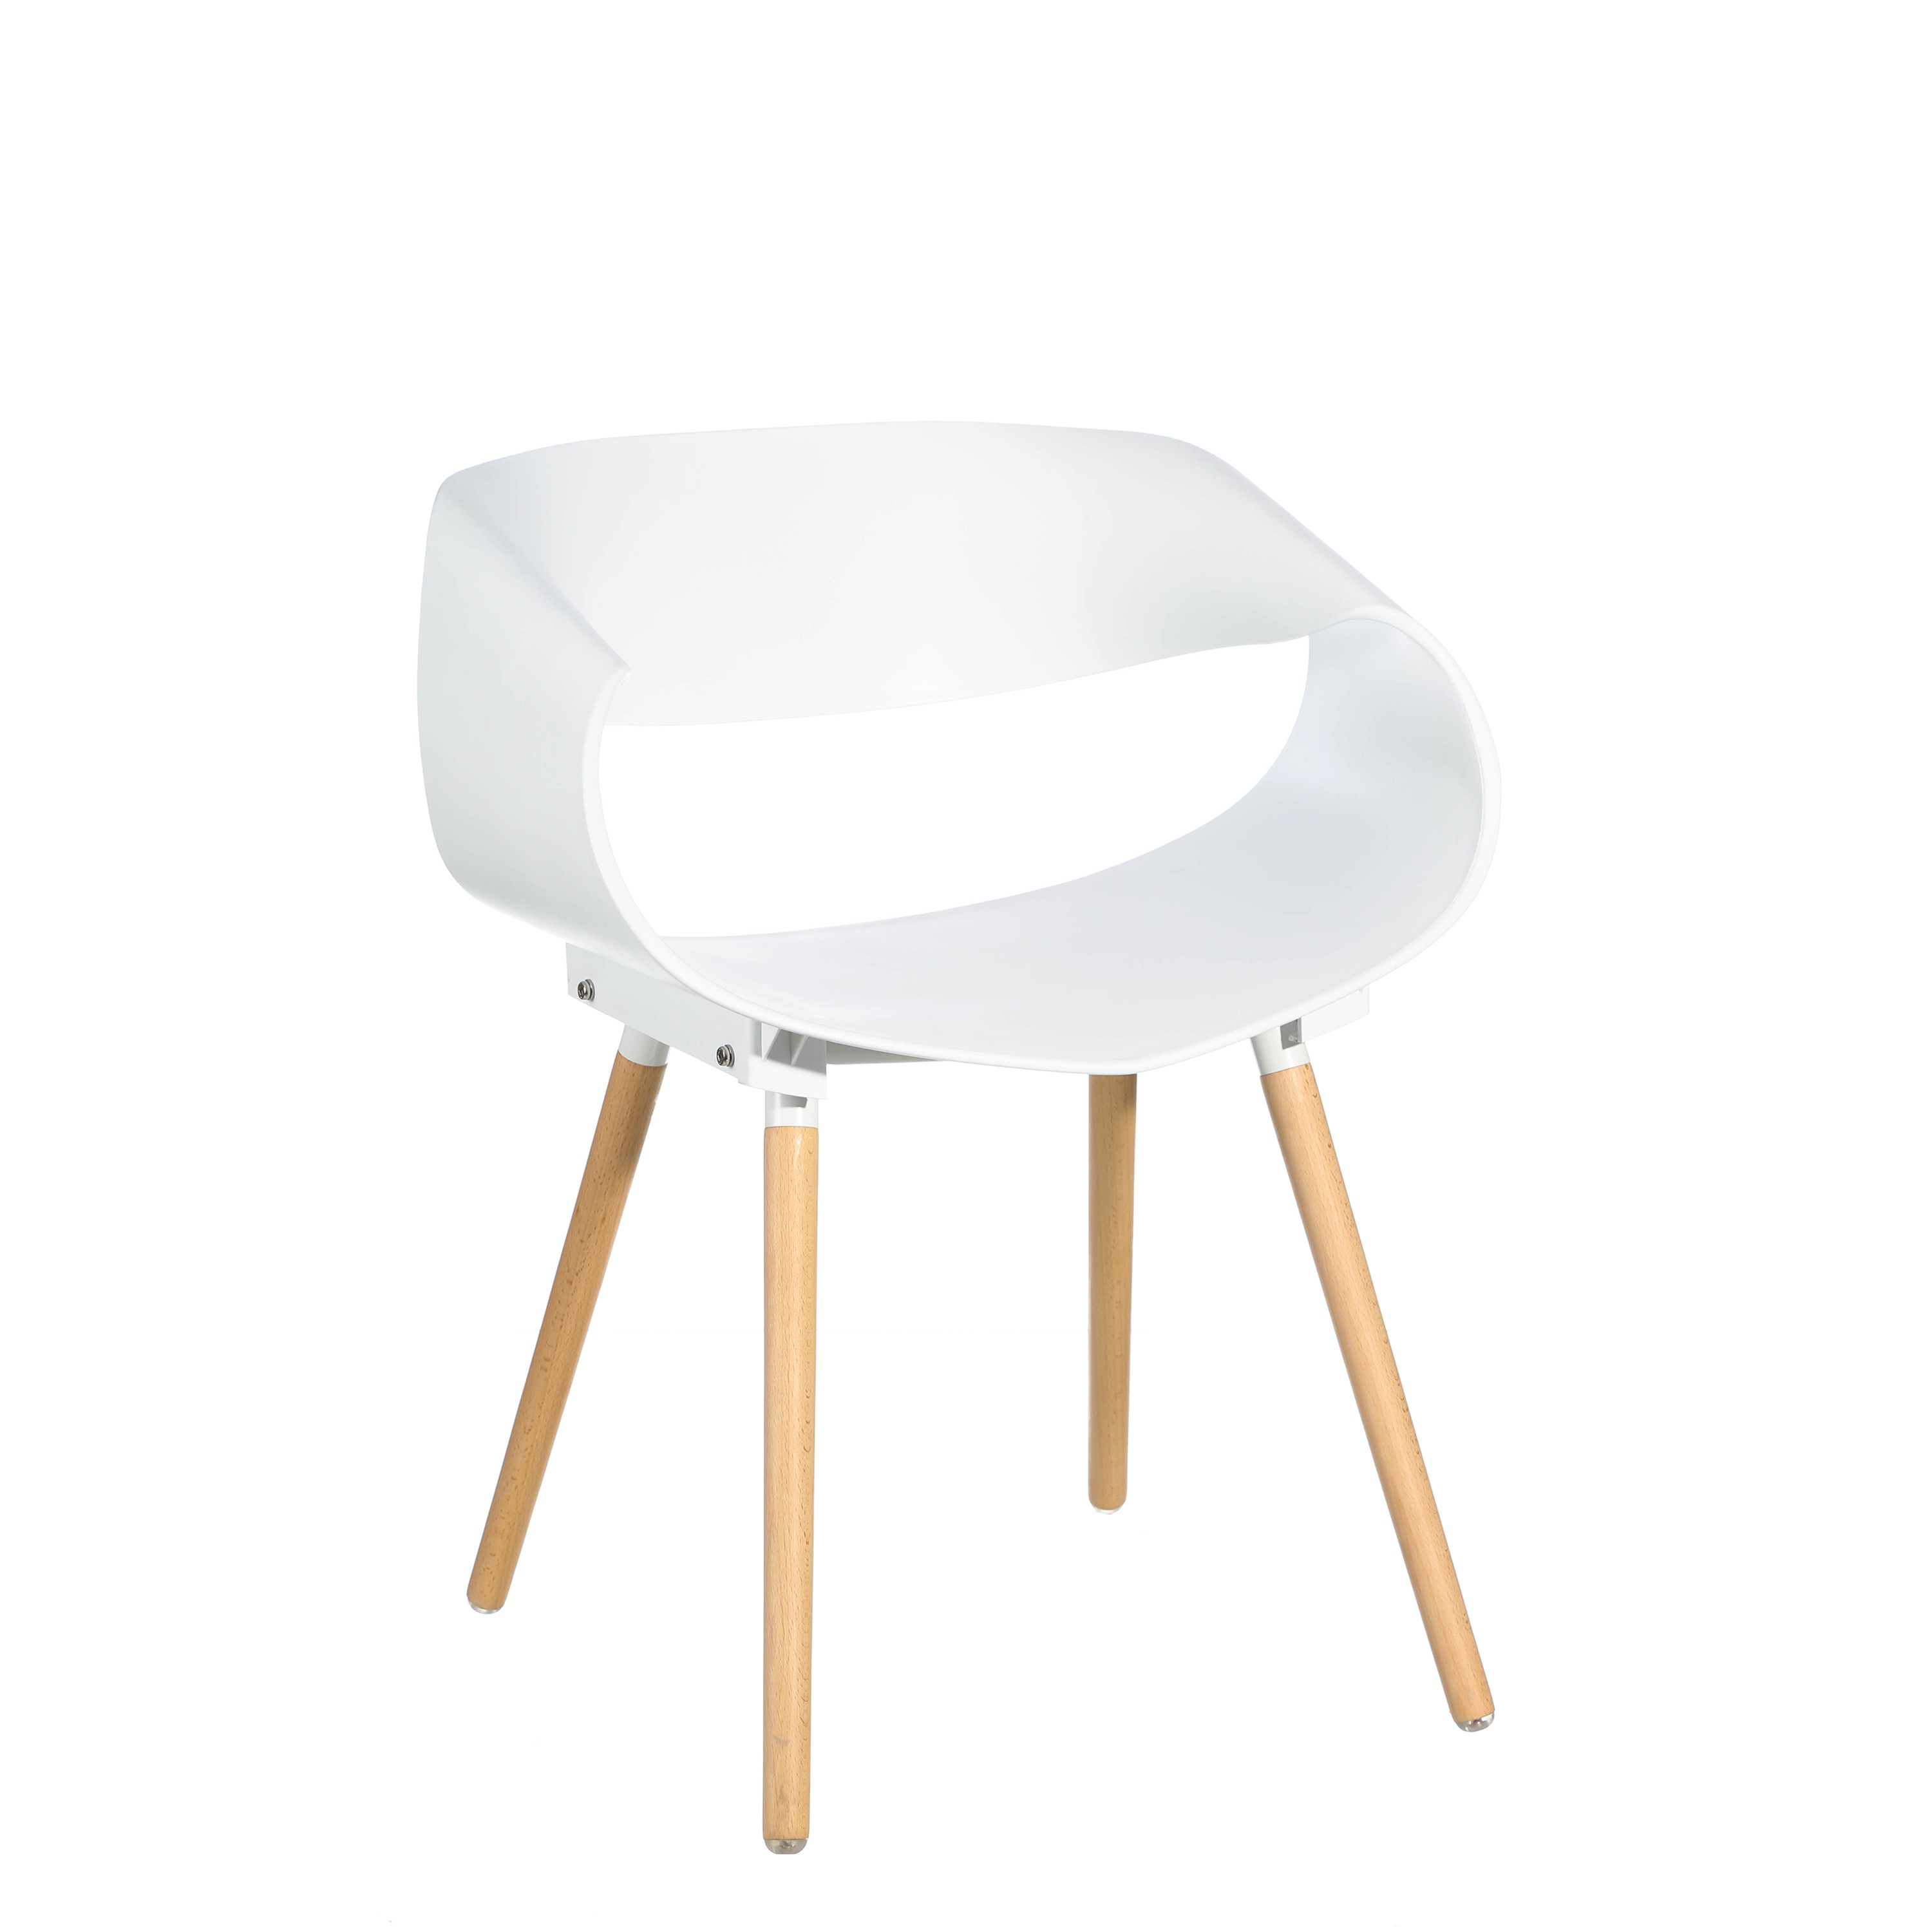 Chaise Blanche Pied Bois Chaise Blanche Pas Cher